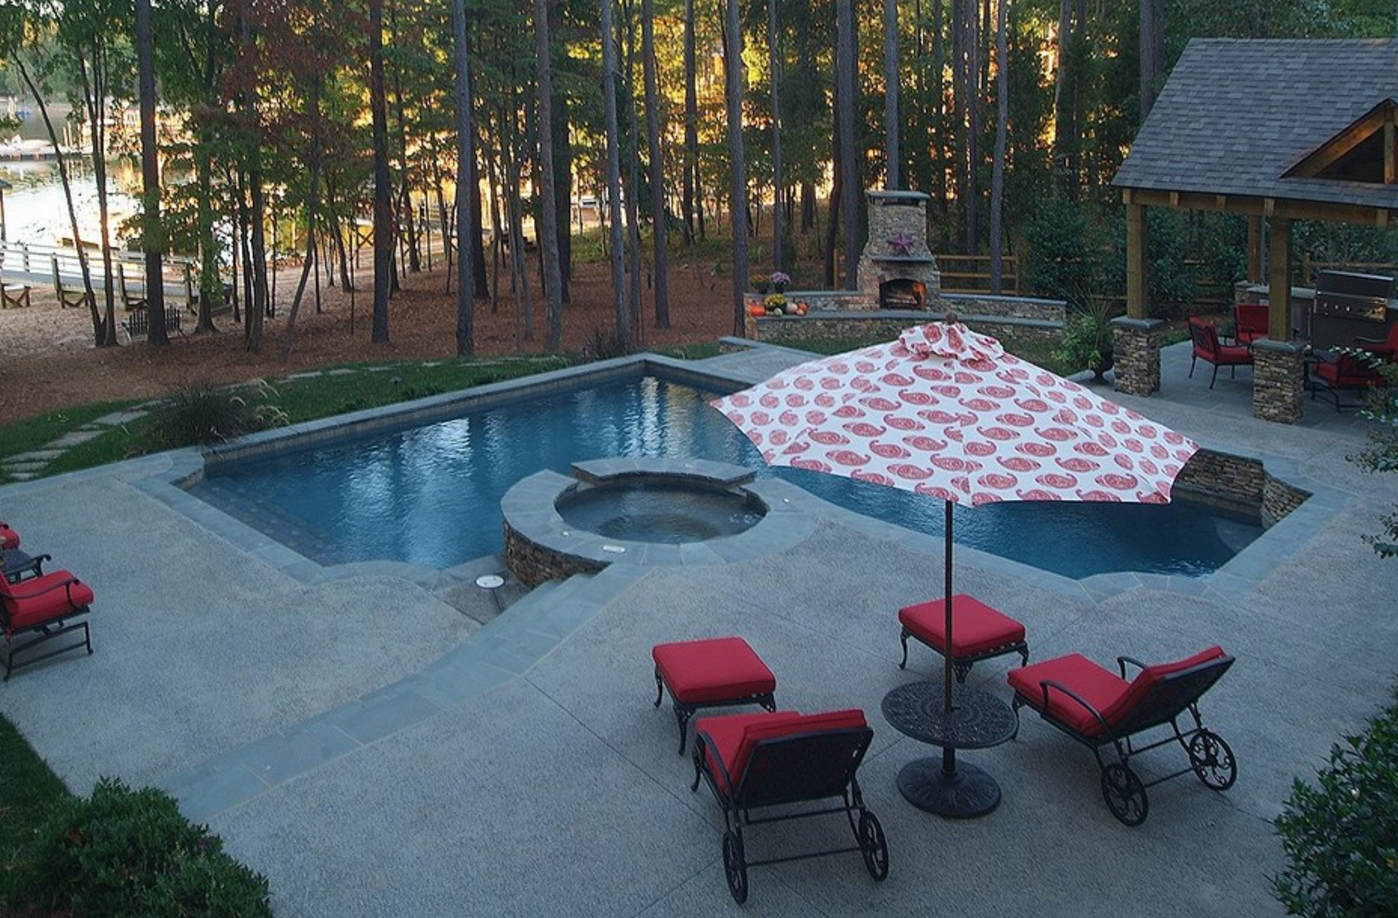 Poolside patio with fireplace and red furniture